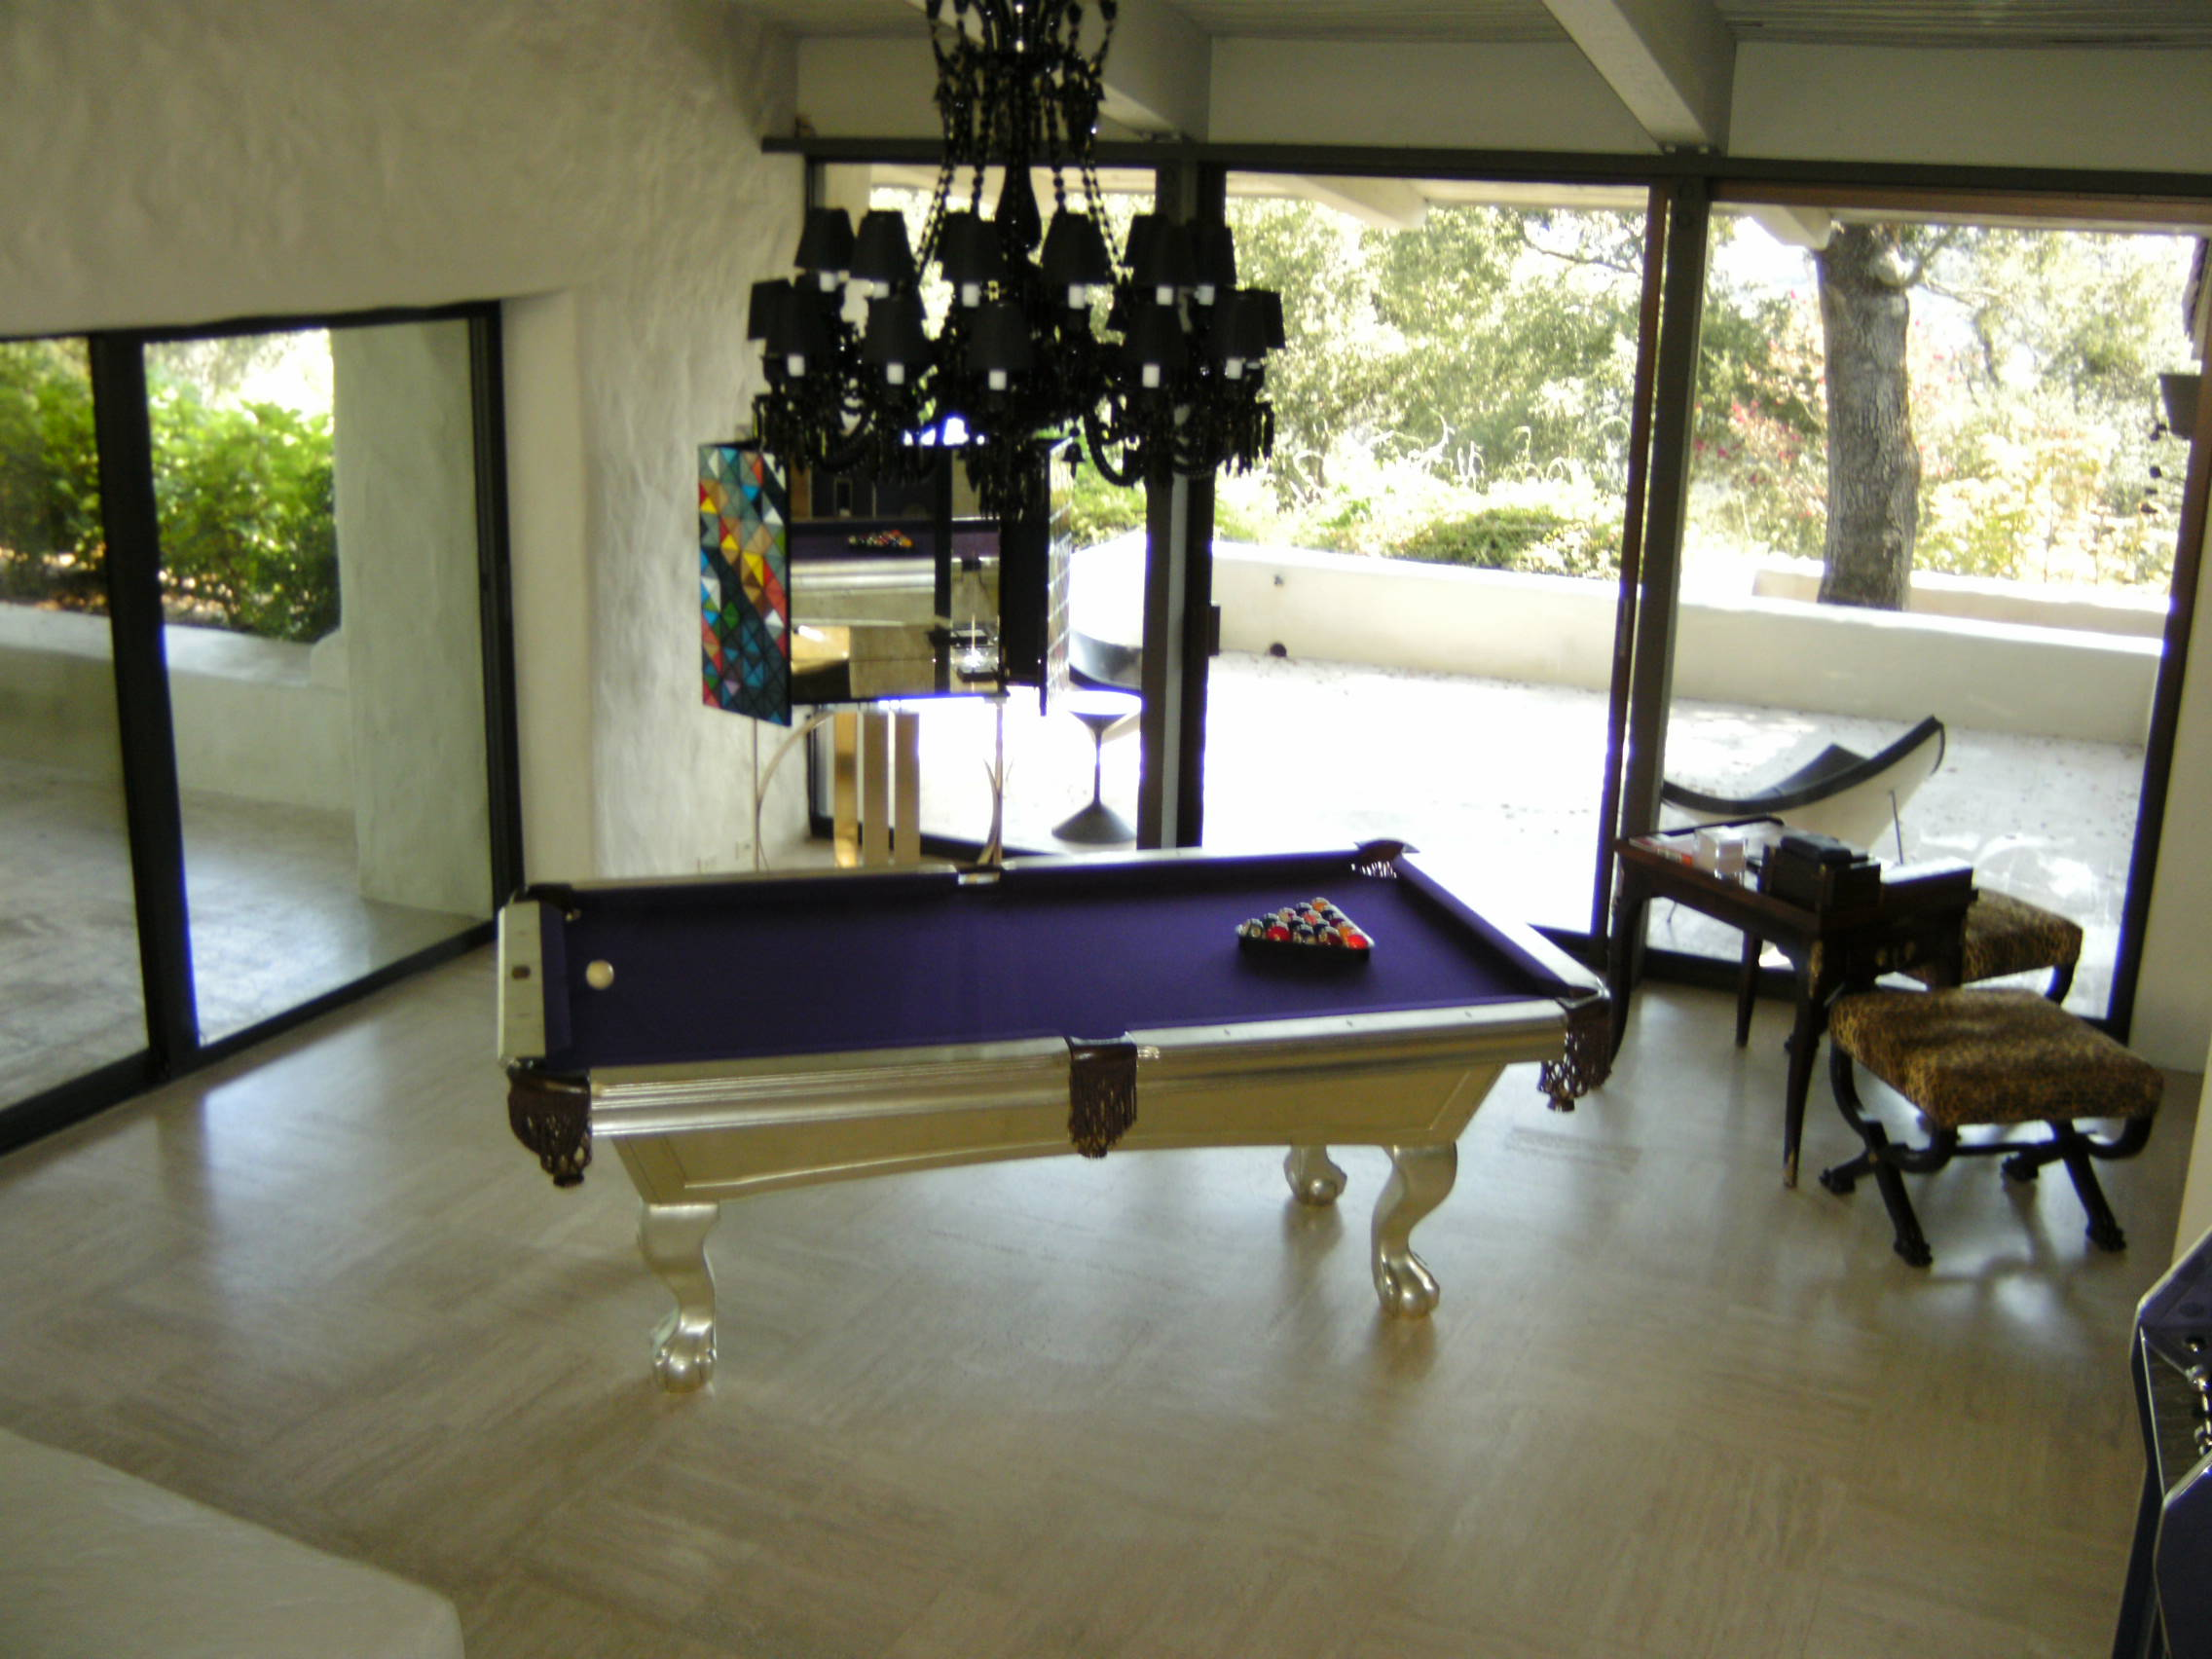 White Gold Pool Table Snooker Table & Pool Tables : Pool Dining Table : Pool Diners Hubble Sports